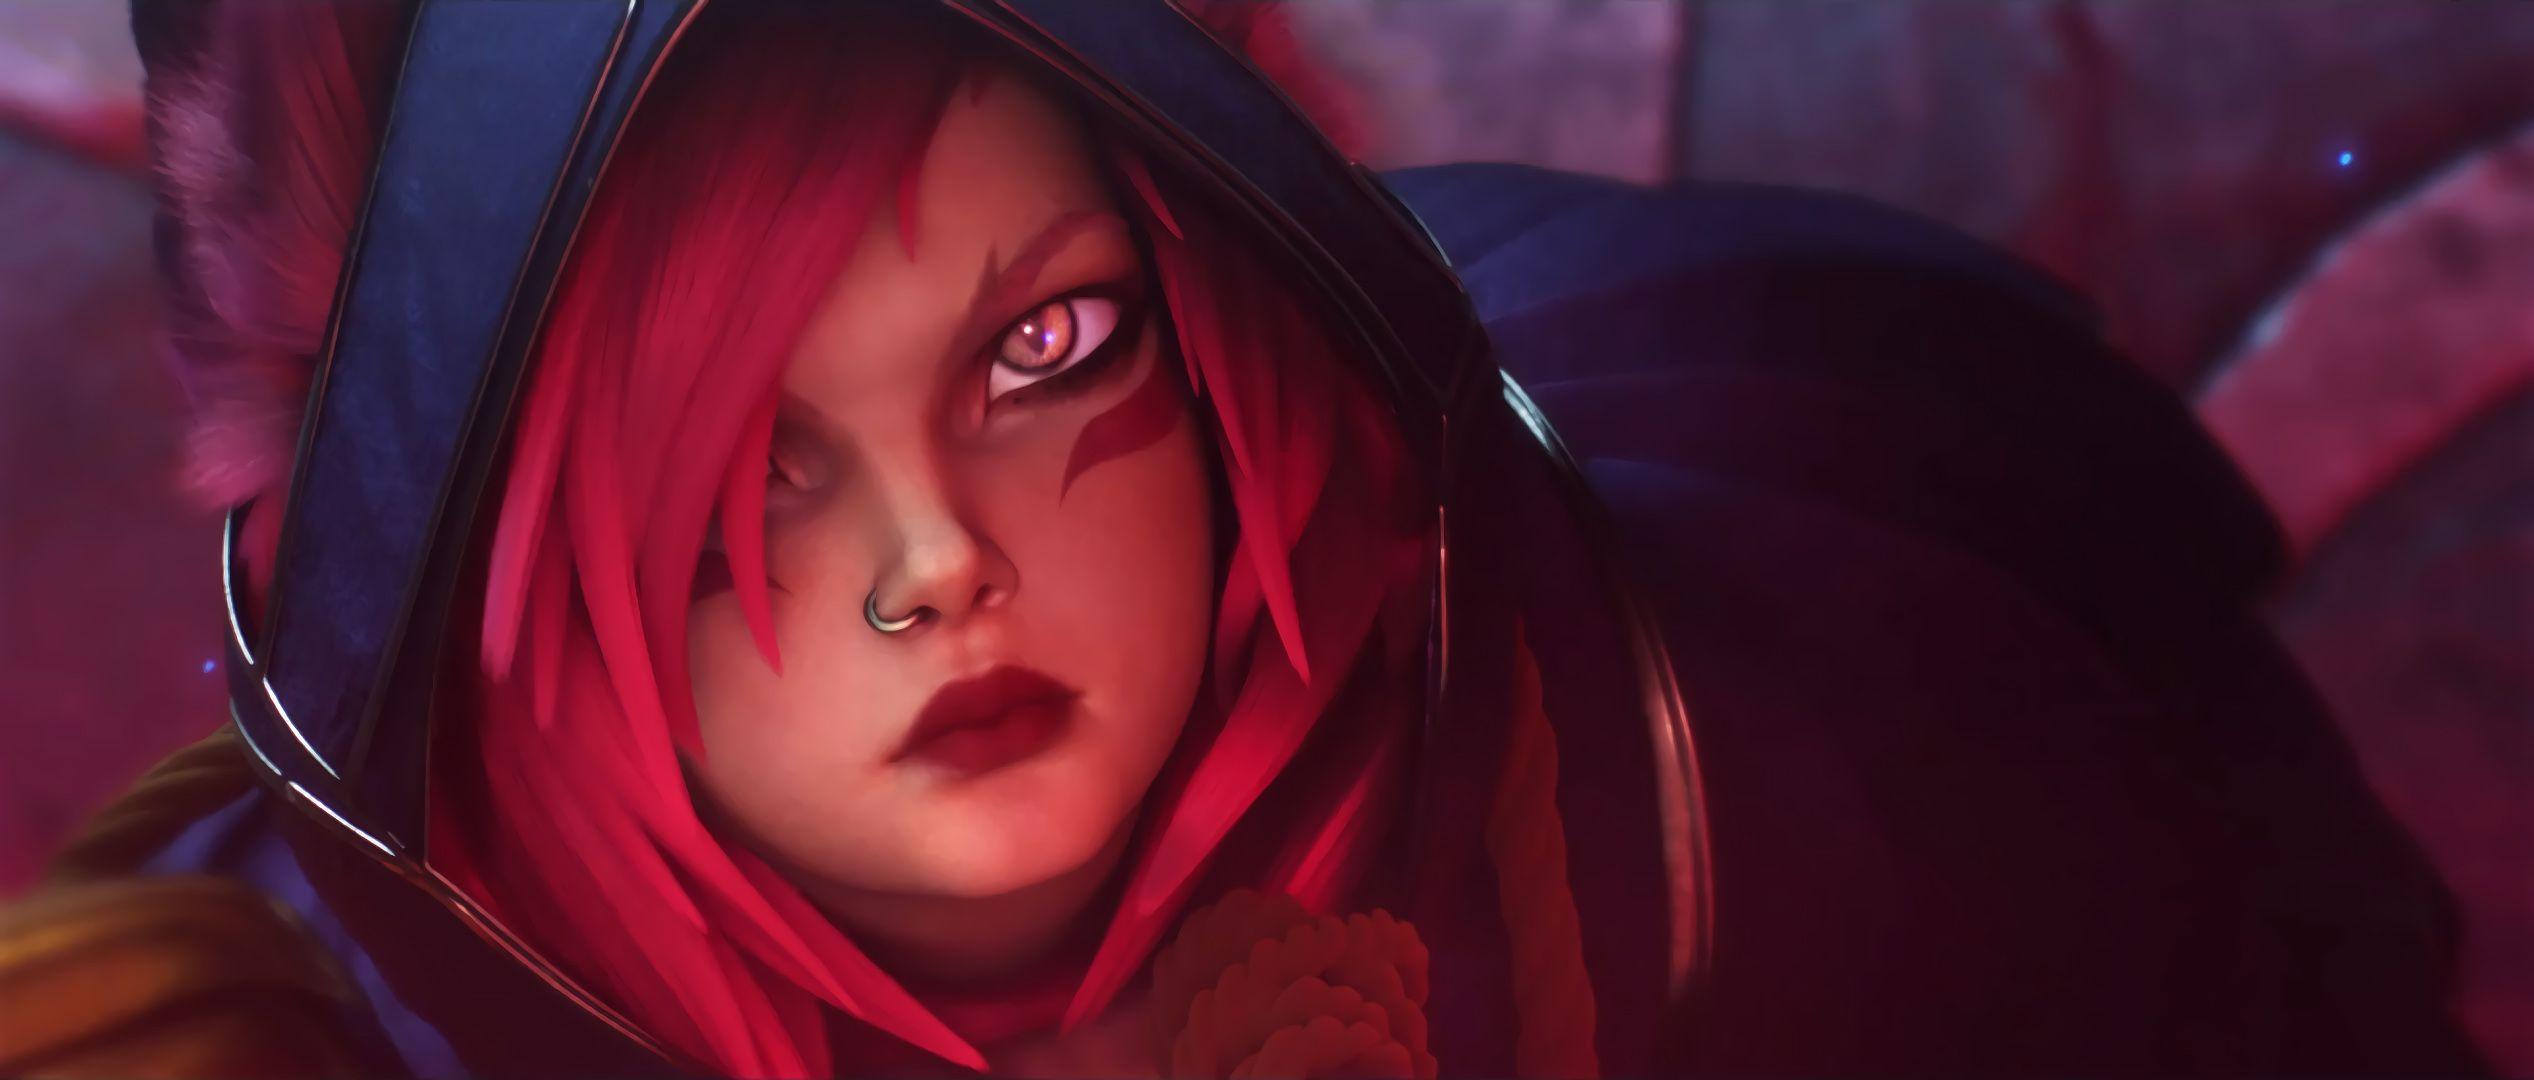 Xayah Official Artwork - LoL Wallpapers | HD Wallpapers & Artworks ...